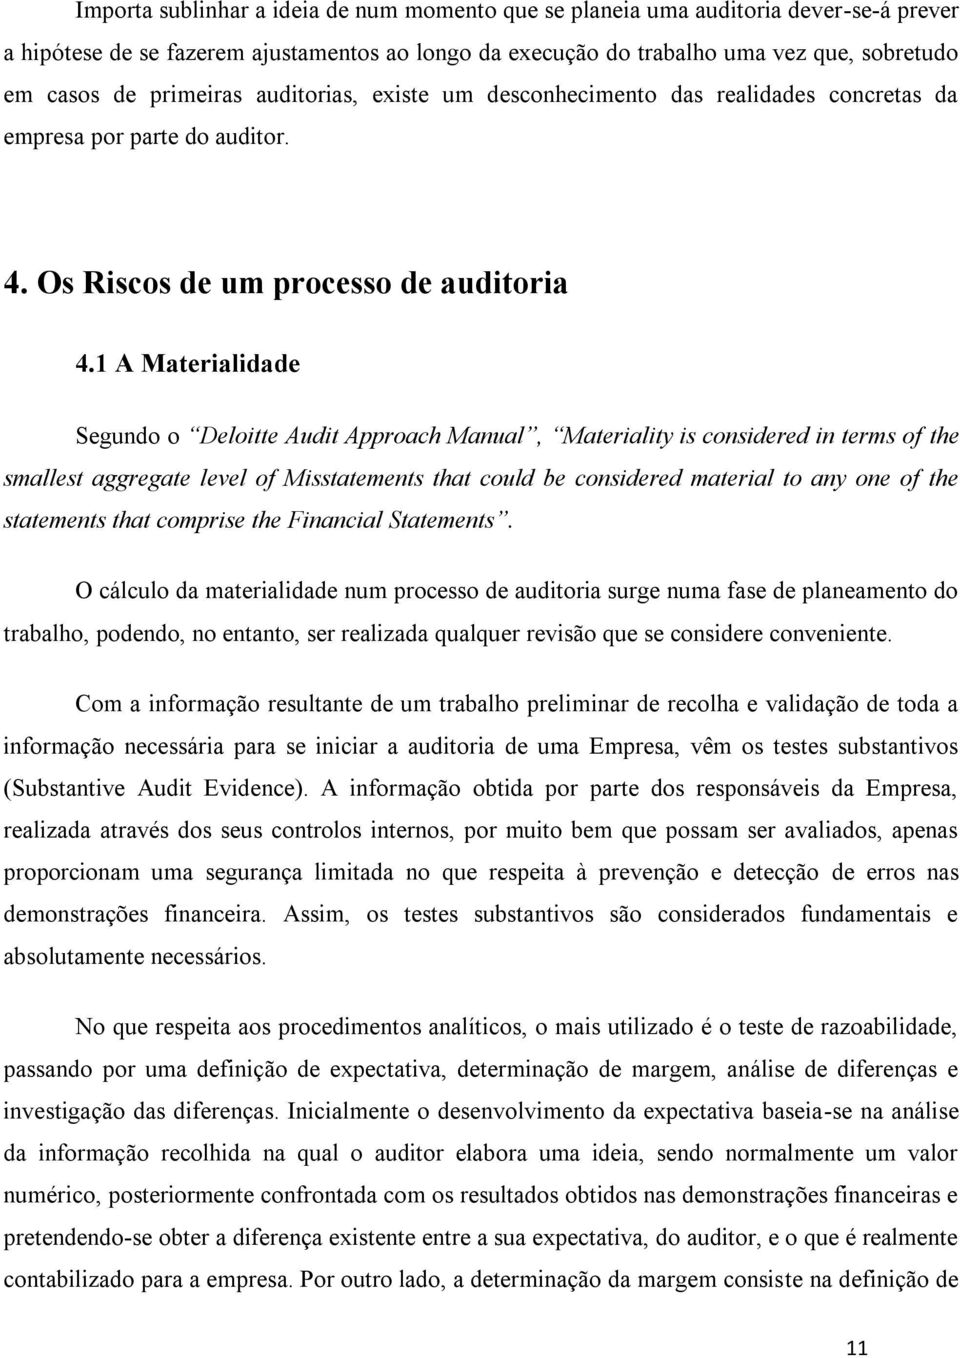 1 A Materialidade Segundo o Deloitte Audit Approach Manual, Materiality is considered in terms of the smallest aggregate level of Misstatements that could be considered material to any one of the